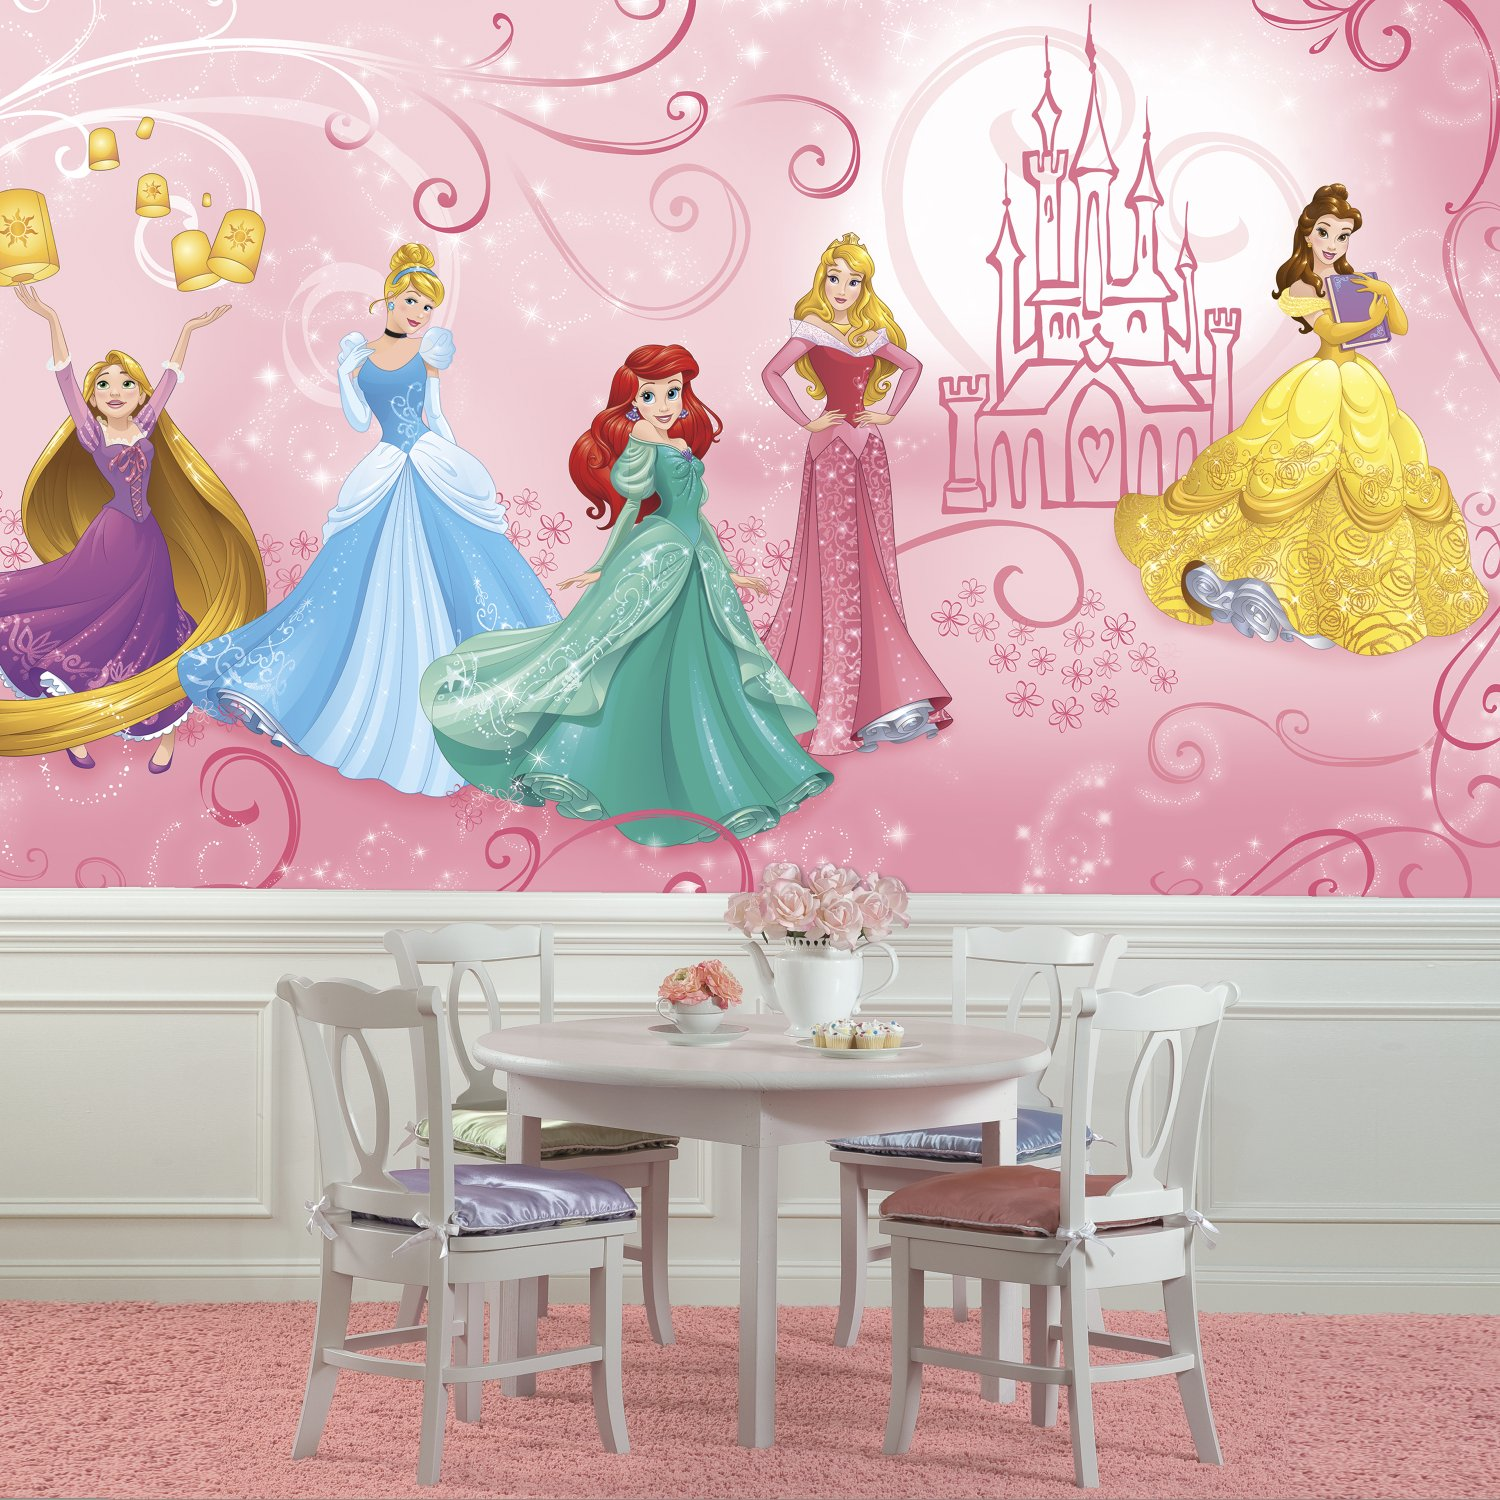 Roommates Disney Princess Enchanted Removable Wall Mural 105 Feet X 6 Feet